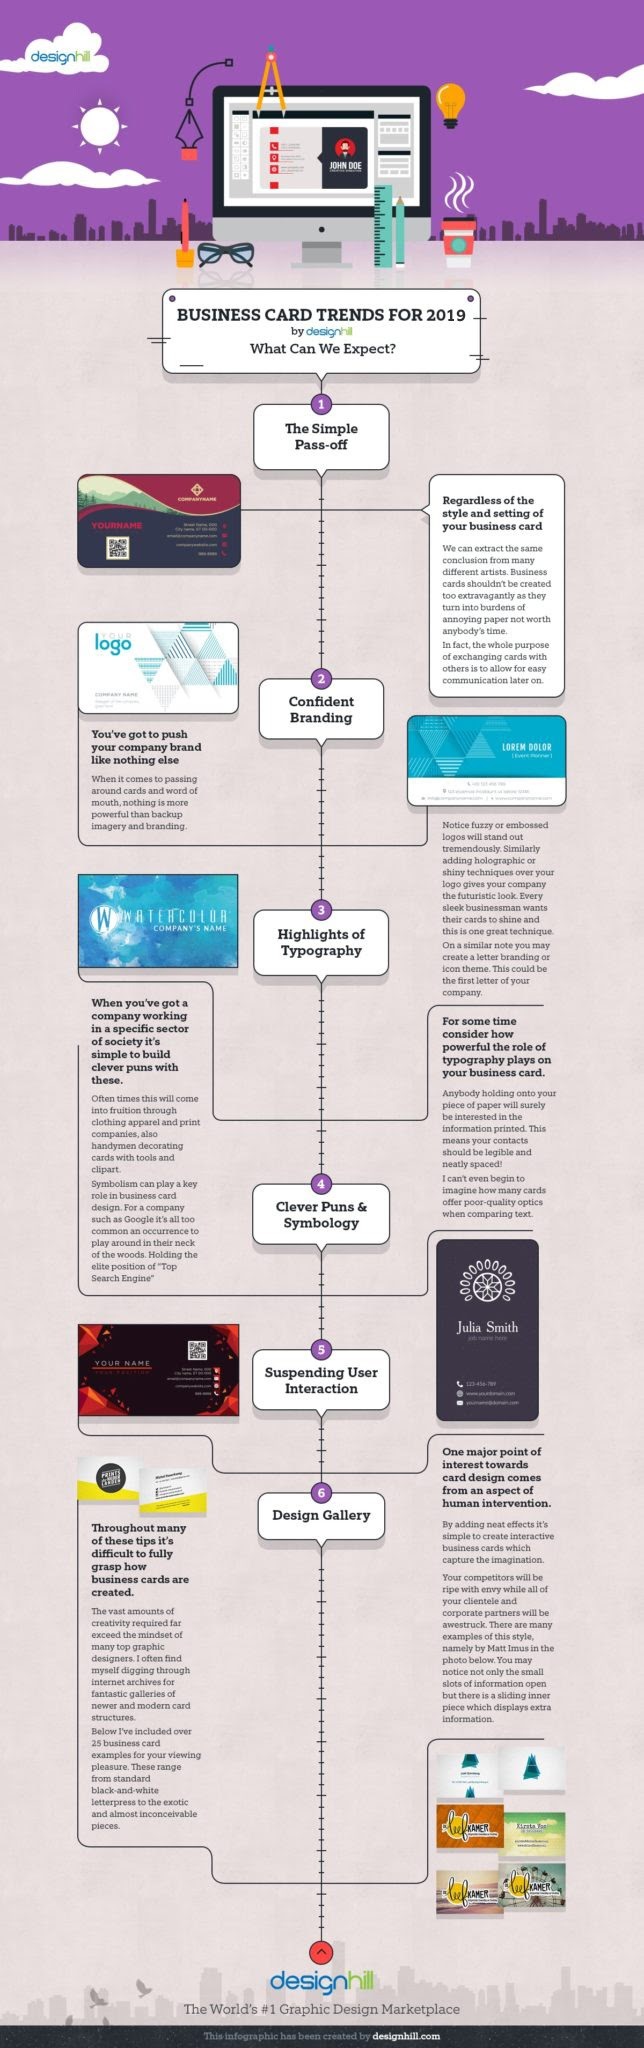 Top 6 Business Card Trends For 2020 #Infographic